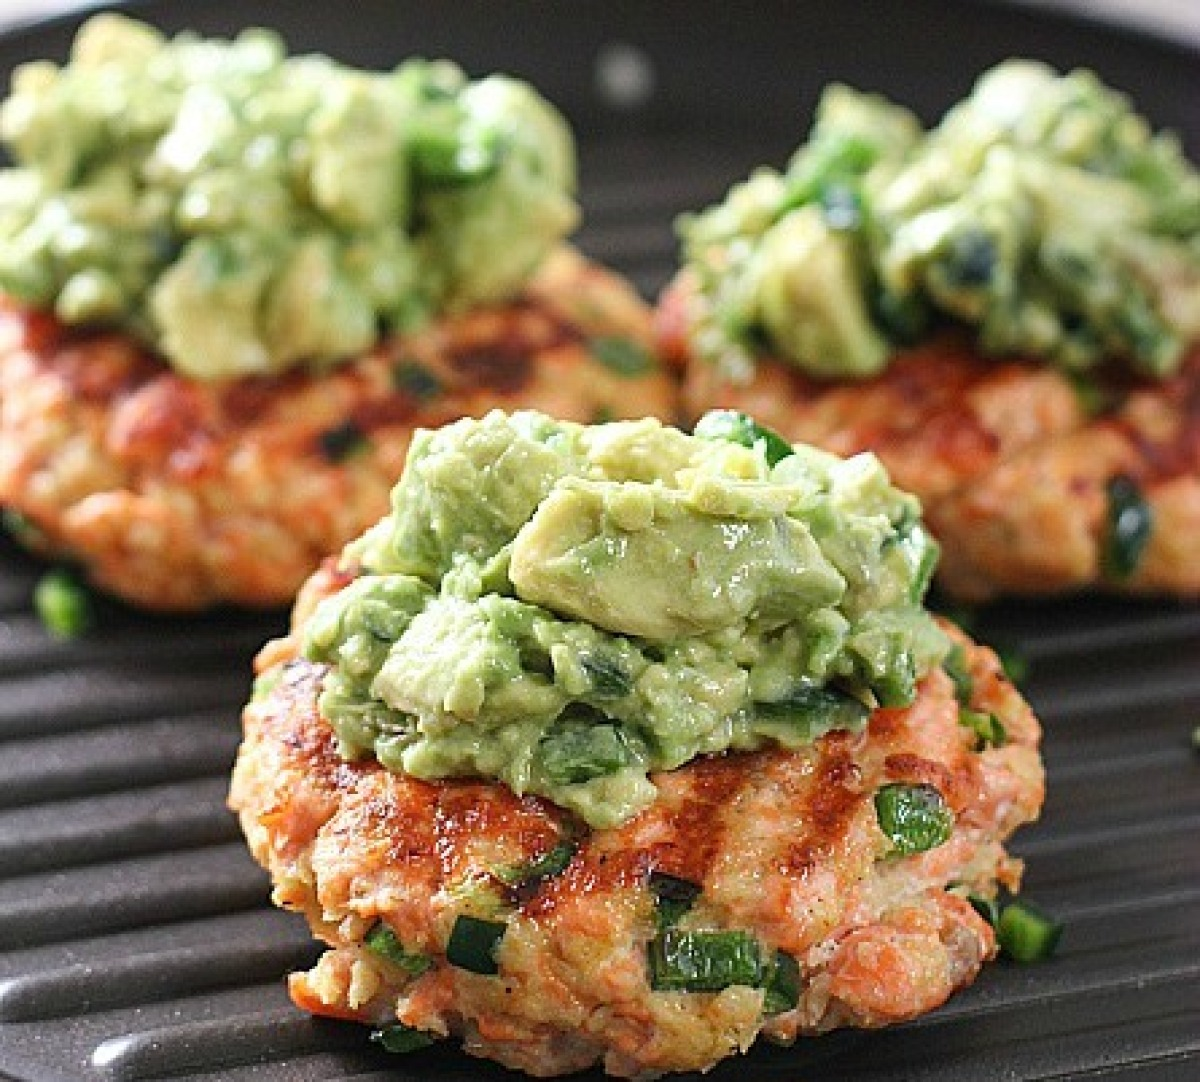 salmon burgers topped with avocado